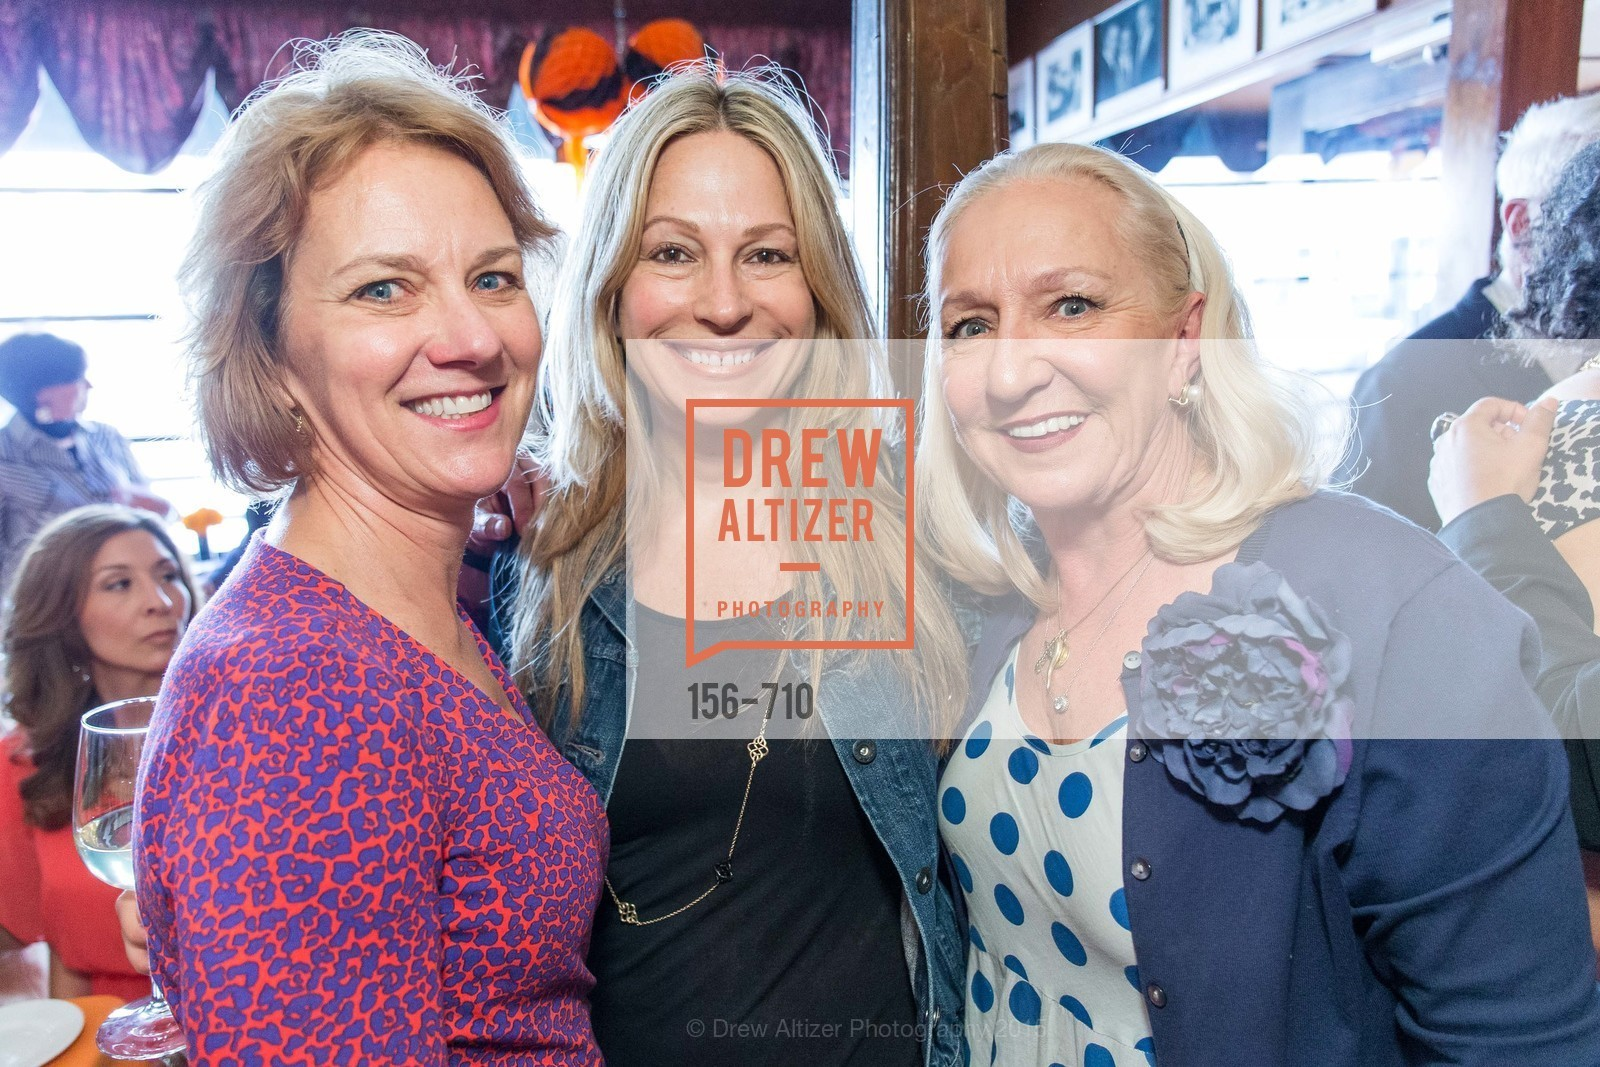 Lee Gregory, Carolyne Zinko, Trish Herman, 3-RING LUNCH CELEBRATION Honoring RENEL BROOKS-MOON, US, June 8th, 2015,Drew Altizer, Drew Altizer Photography, full-service agency, private events, San Francisco photographer, photographer california